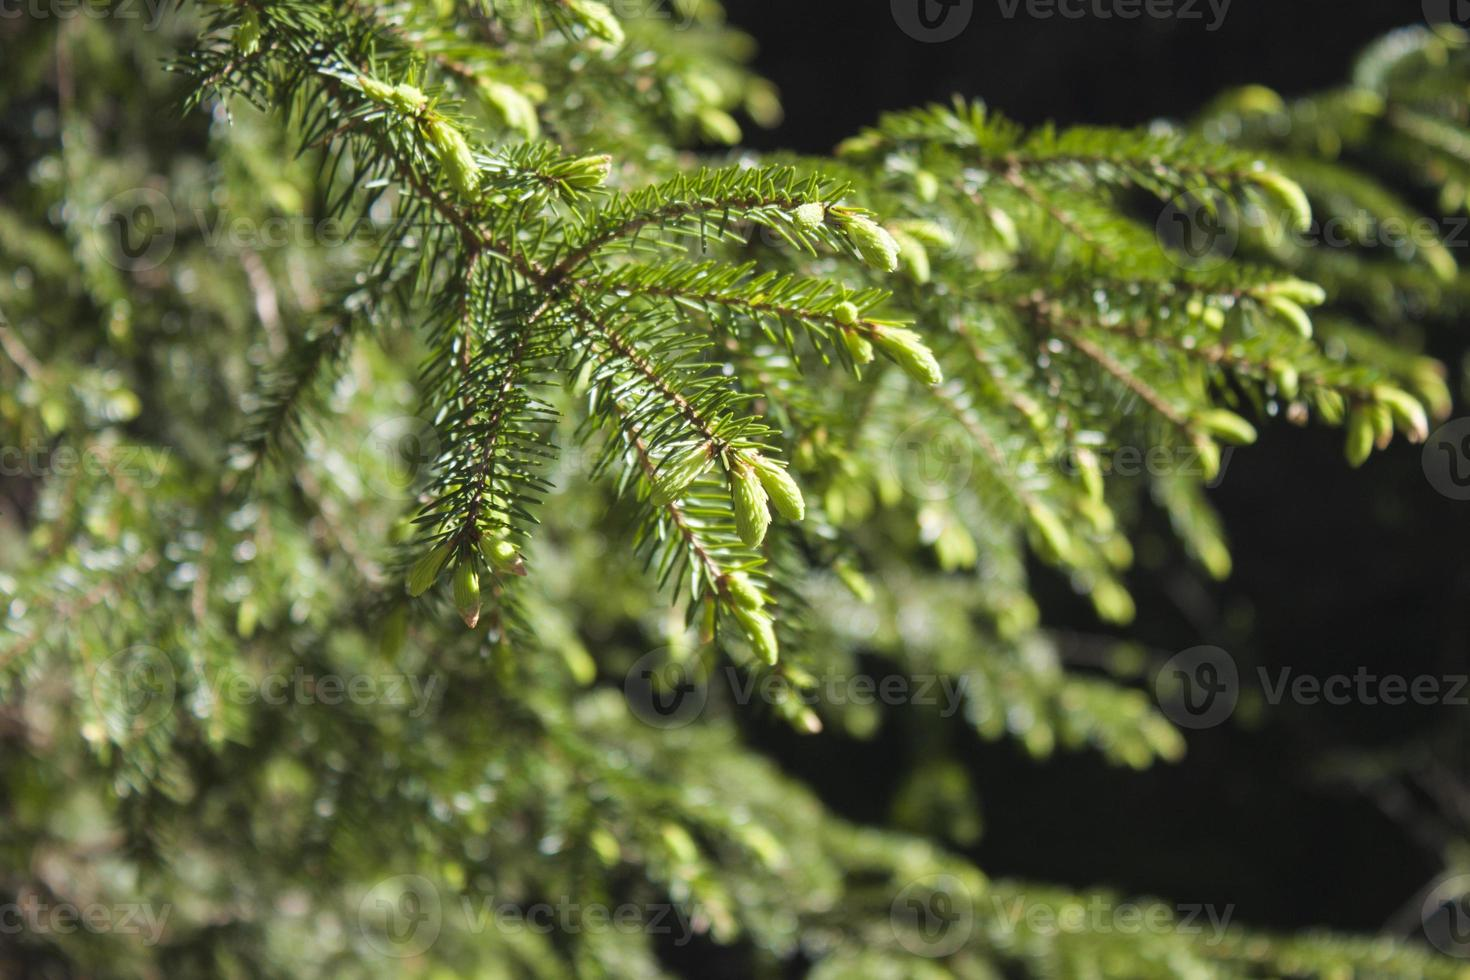 Spruce sprout photo